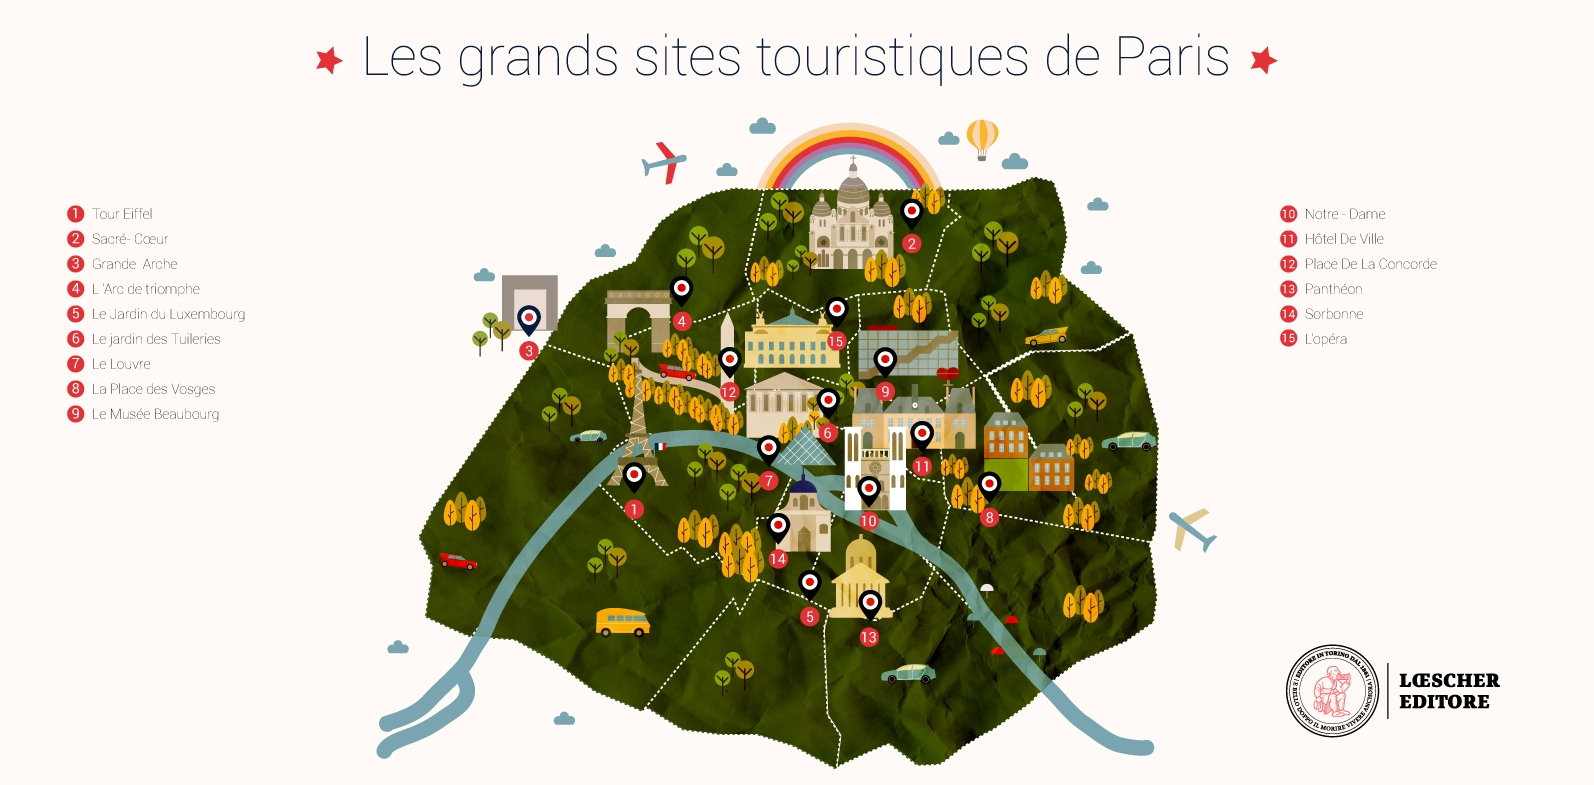 Chiara Alduini: Illustration: Top 15 Places to Visit in Paris